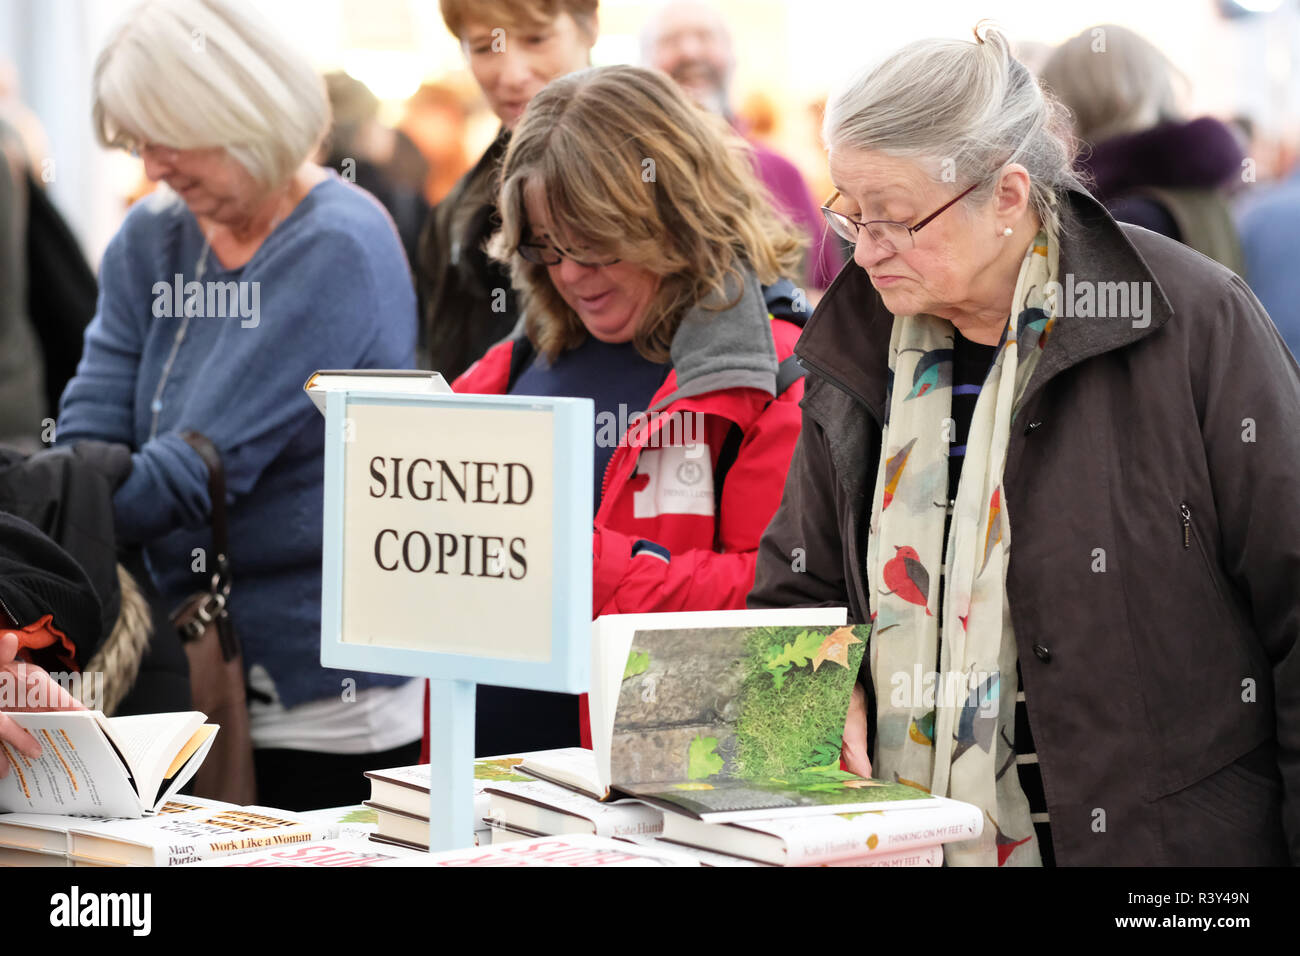 Hay Festival Winter Weekend, Hay on Wye, Wales, UK - Saturday 24th November 2018 - Visitors browse the new books and signed copies in the Festival bookshop - this years Hay Festival Winter Weekend features over 40 events and sessions - Photo Steven May / Alamy Live News - Stock Image